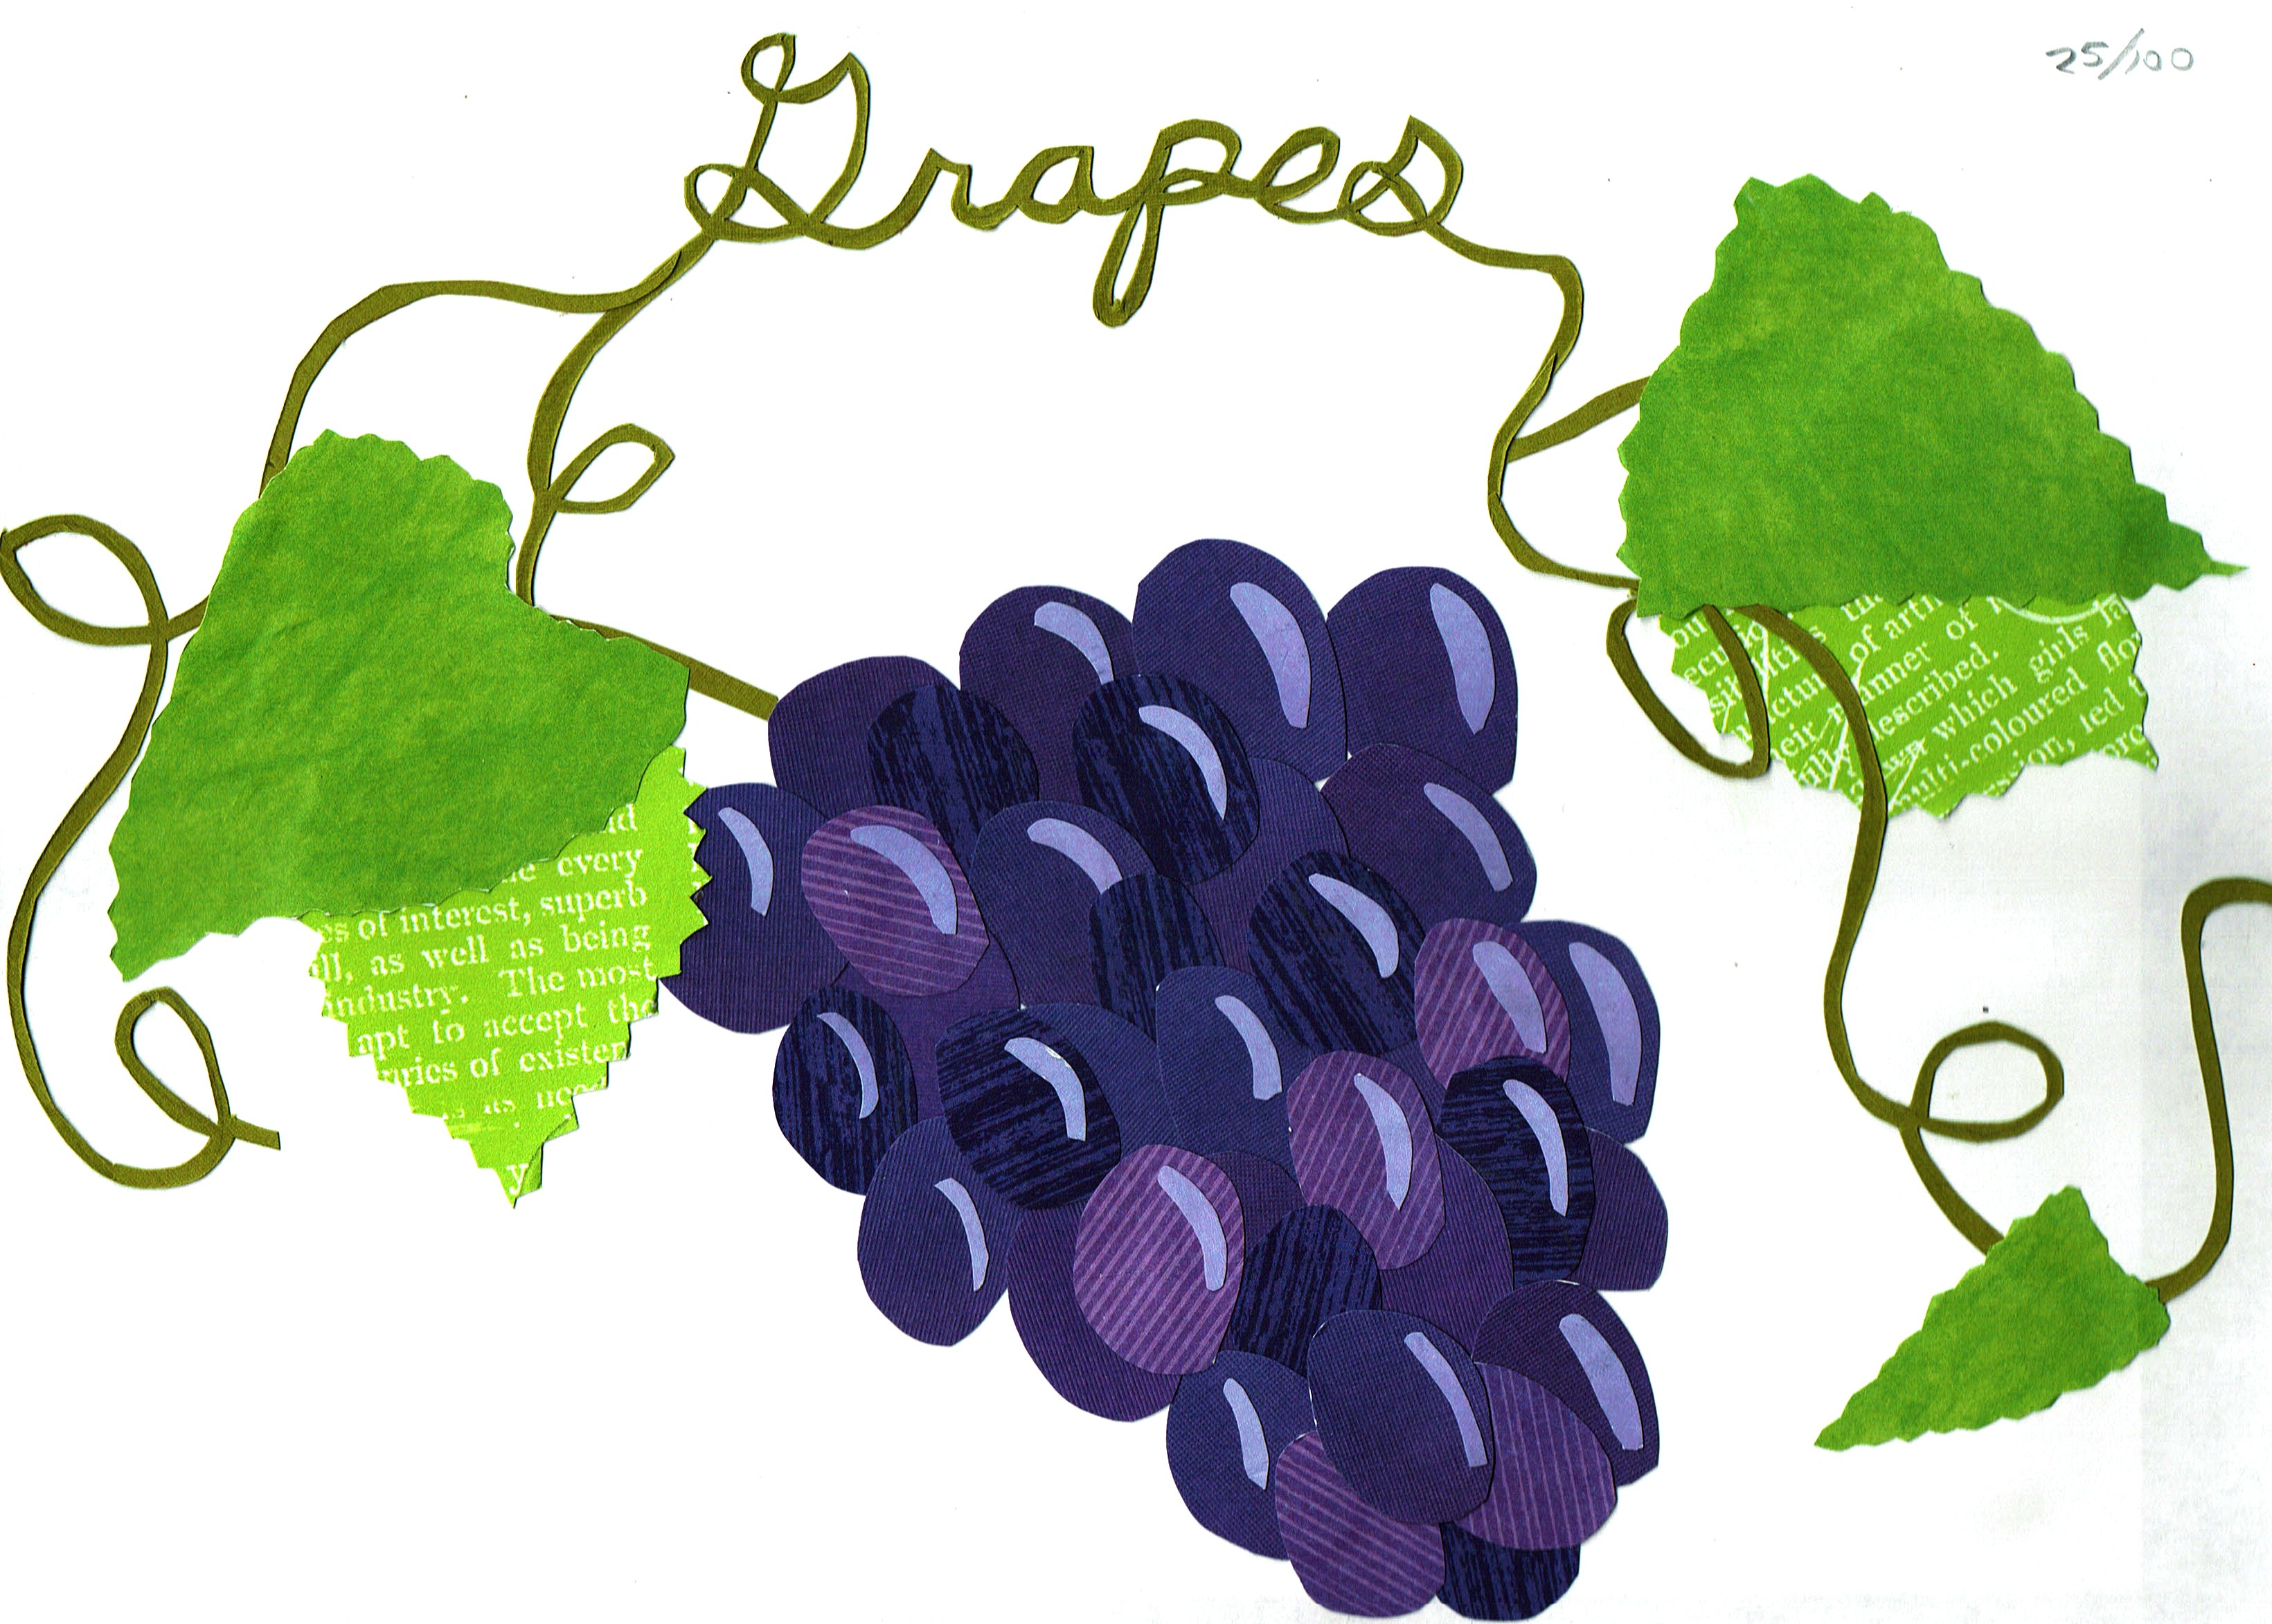 Day 25 - Grapes